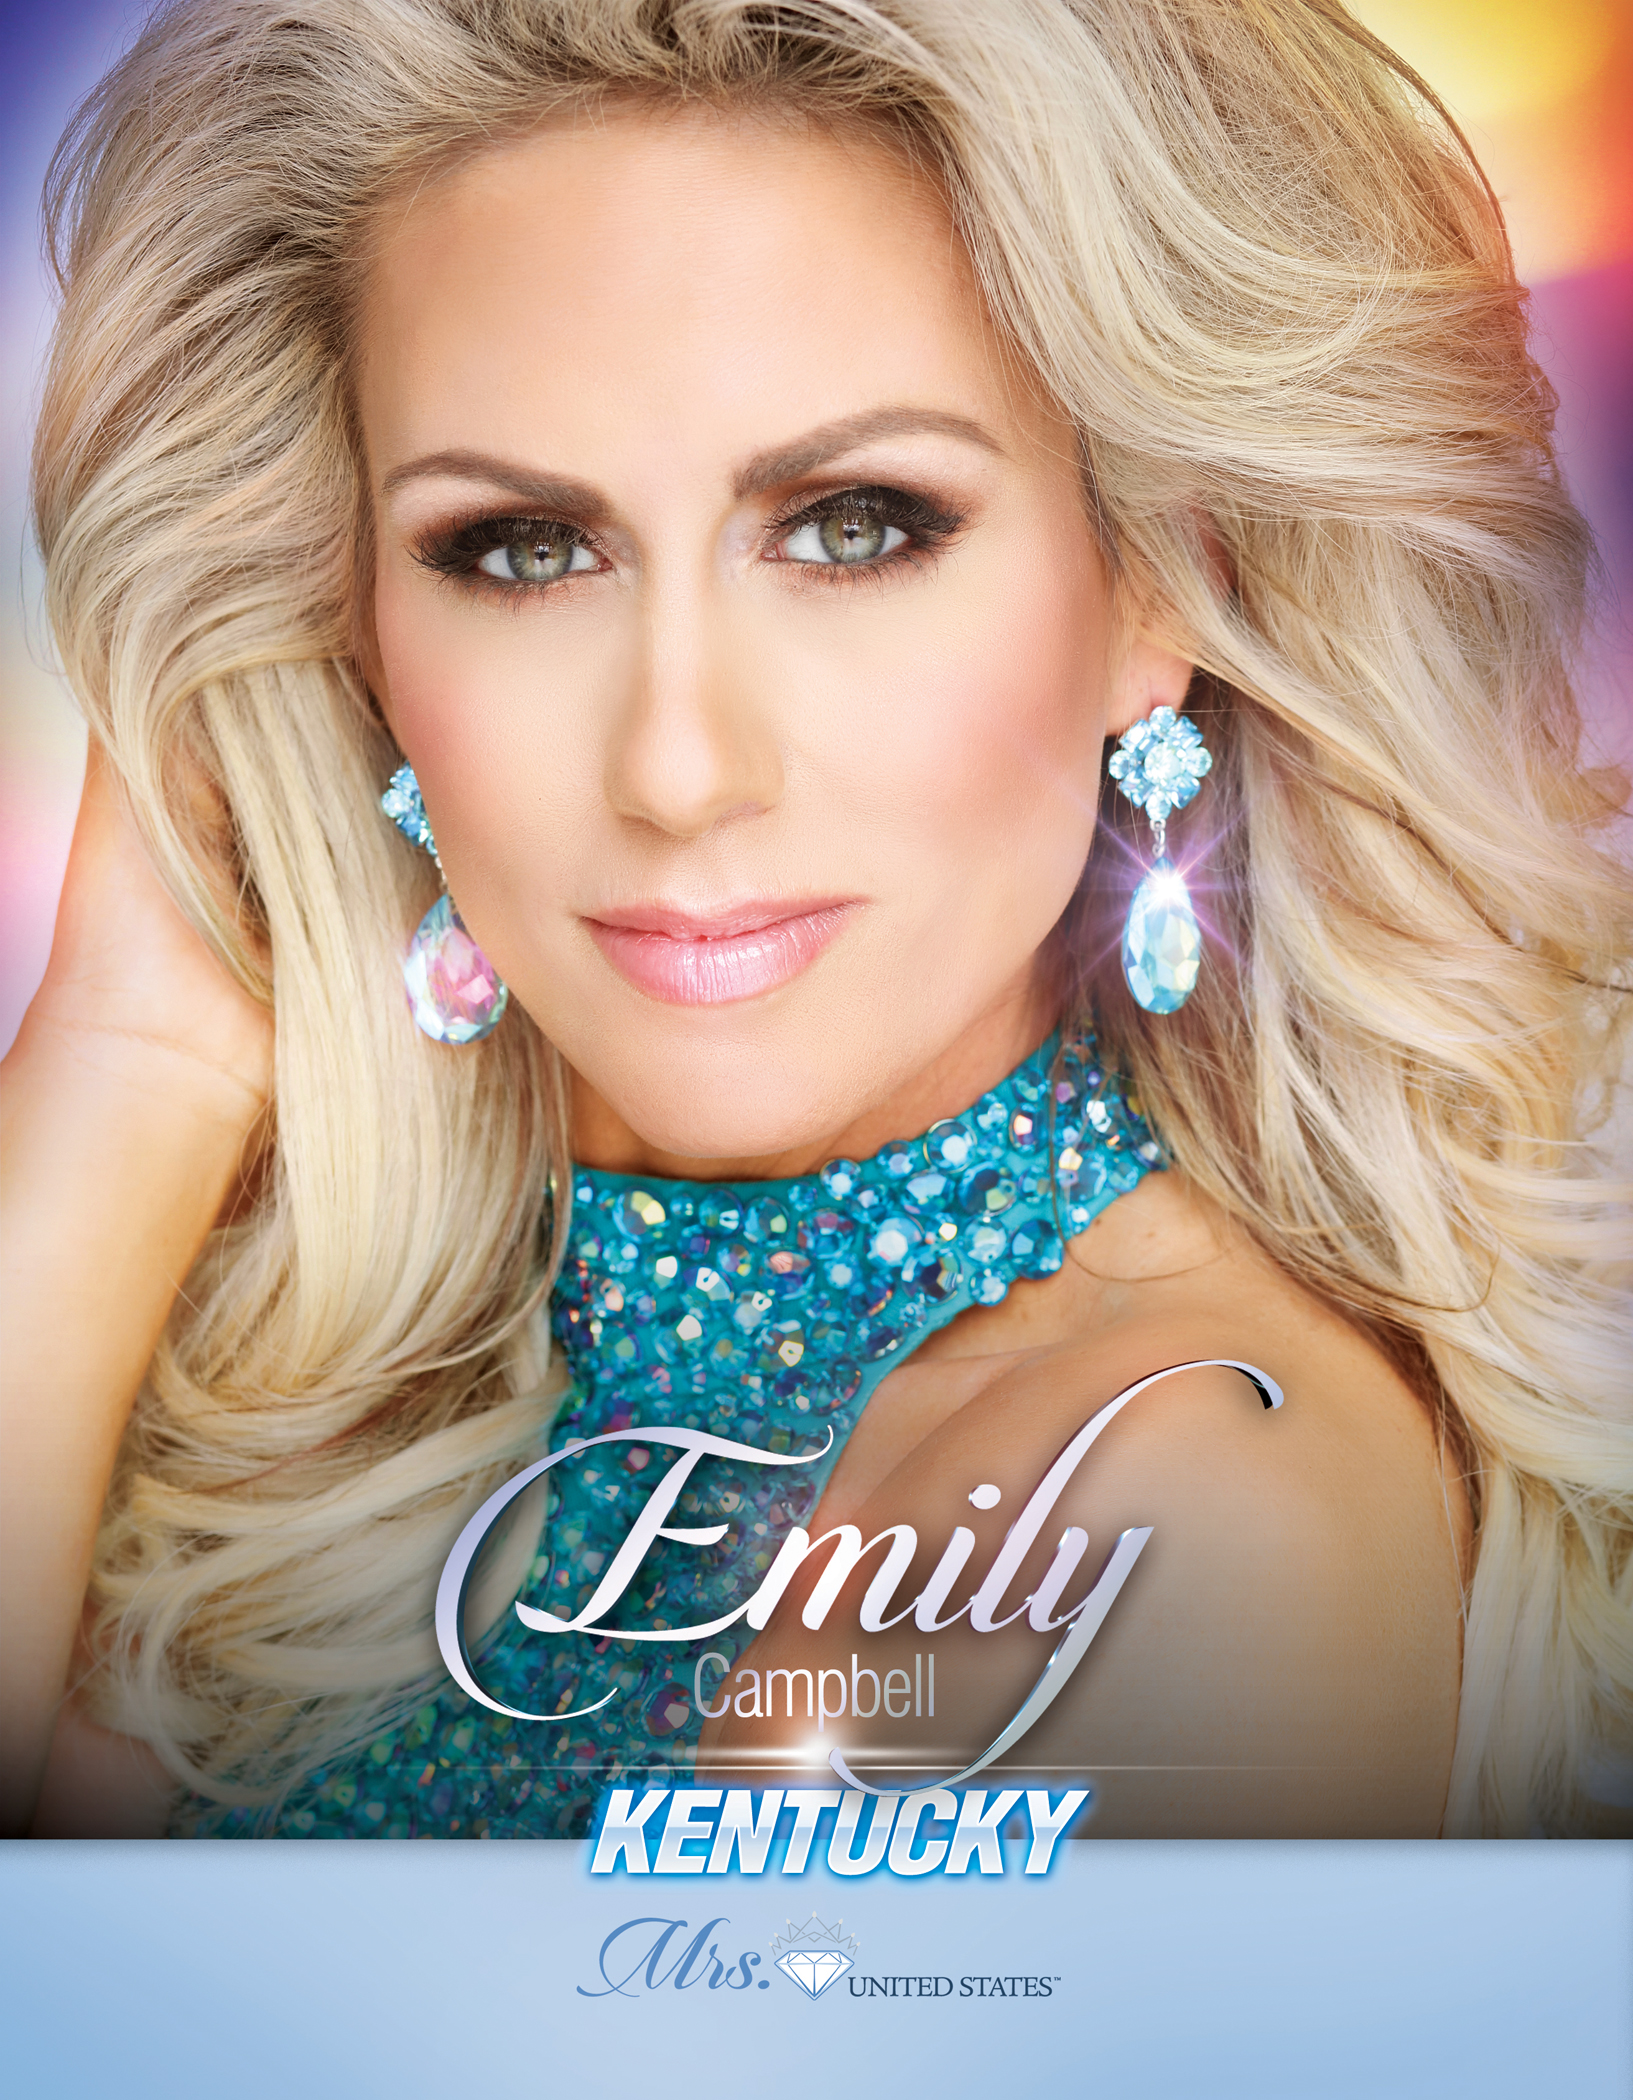 Emily Campbell Mrs. Kentucky United States - 2019